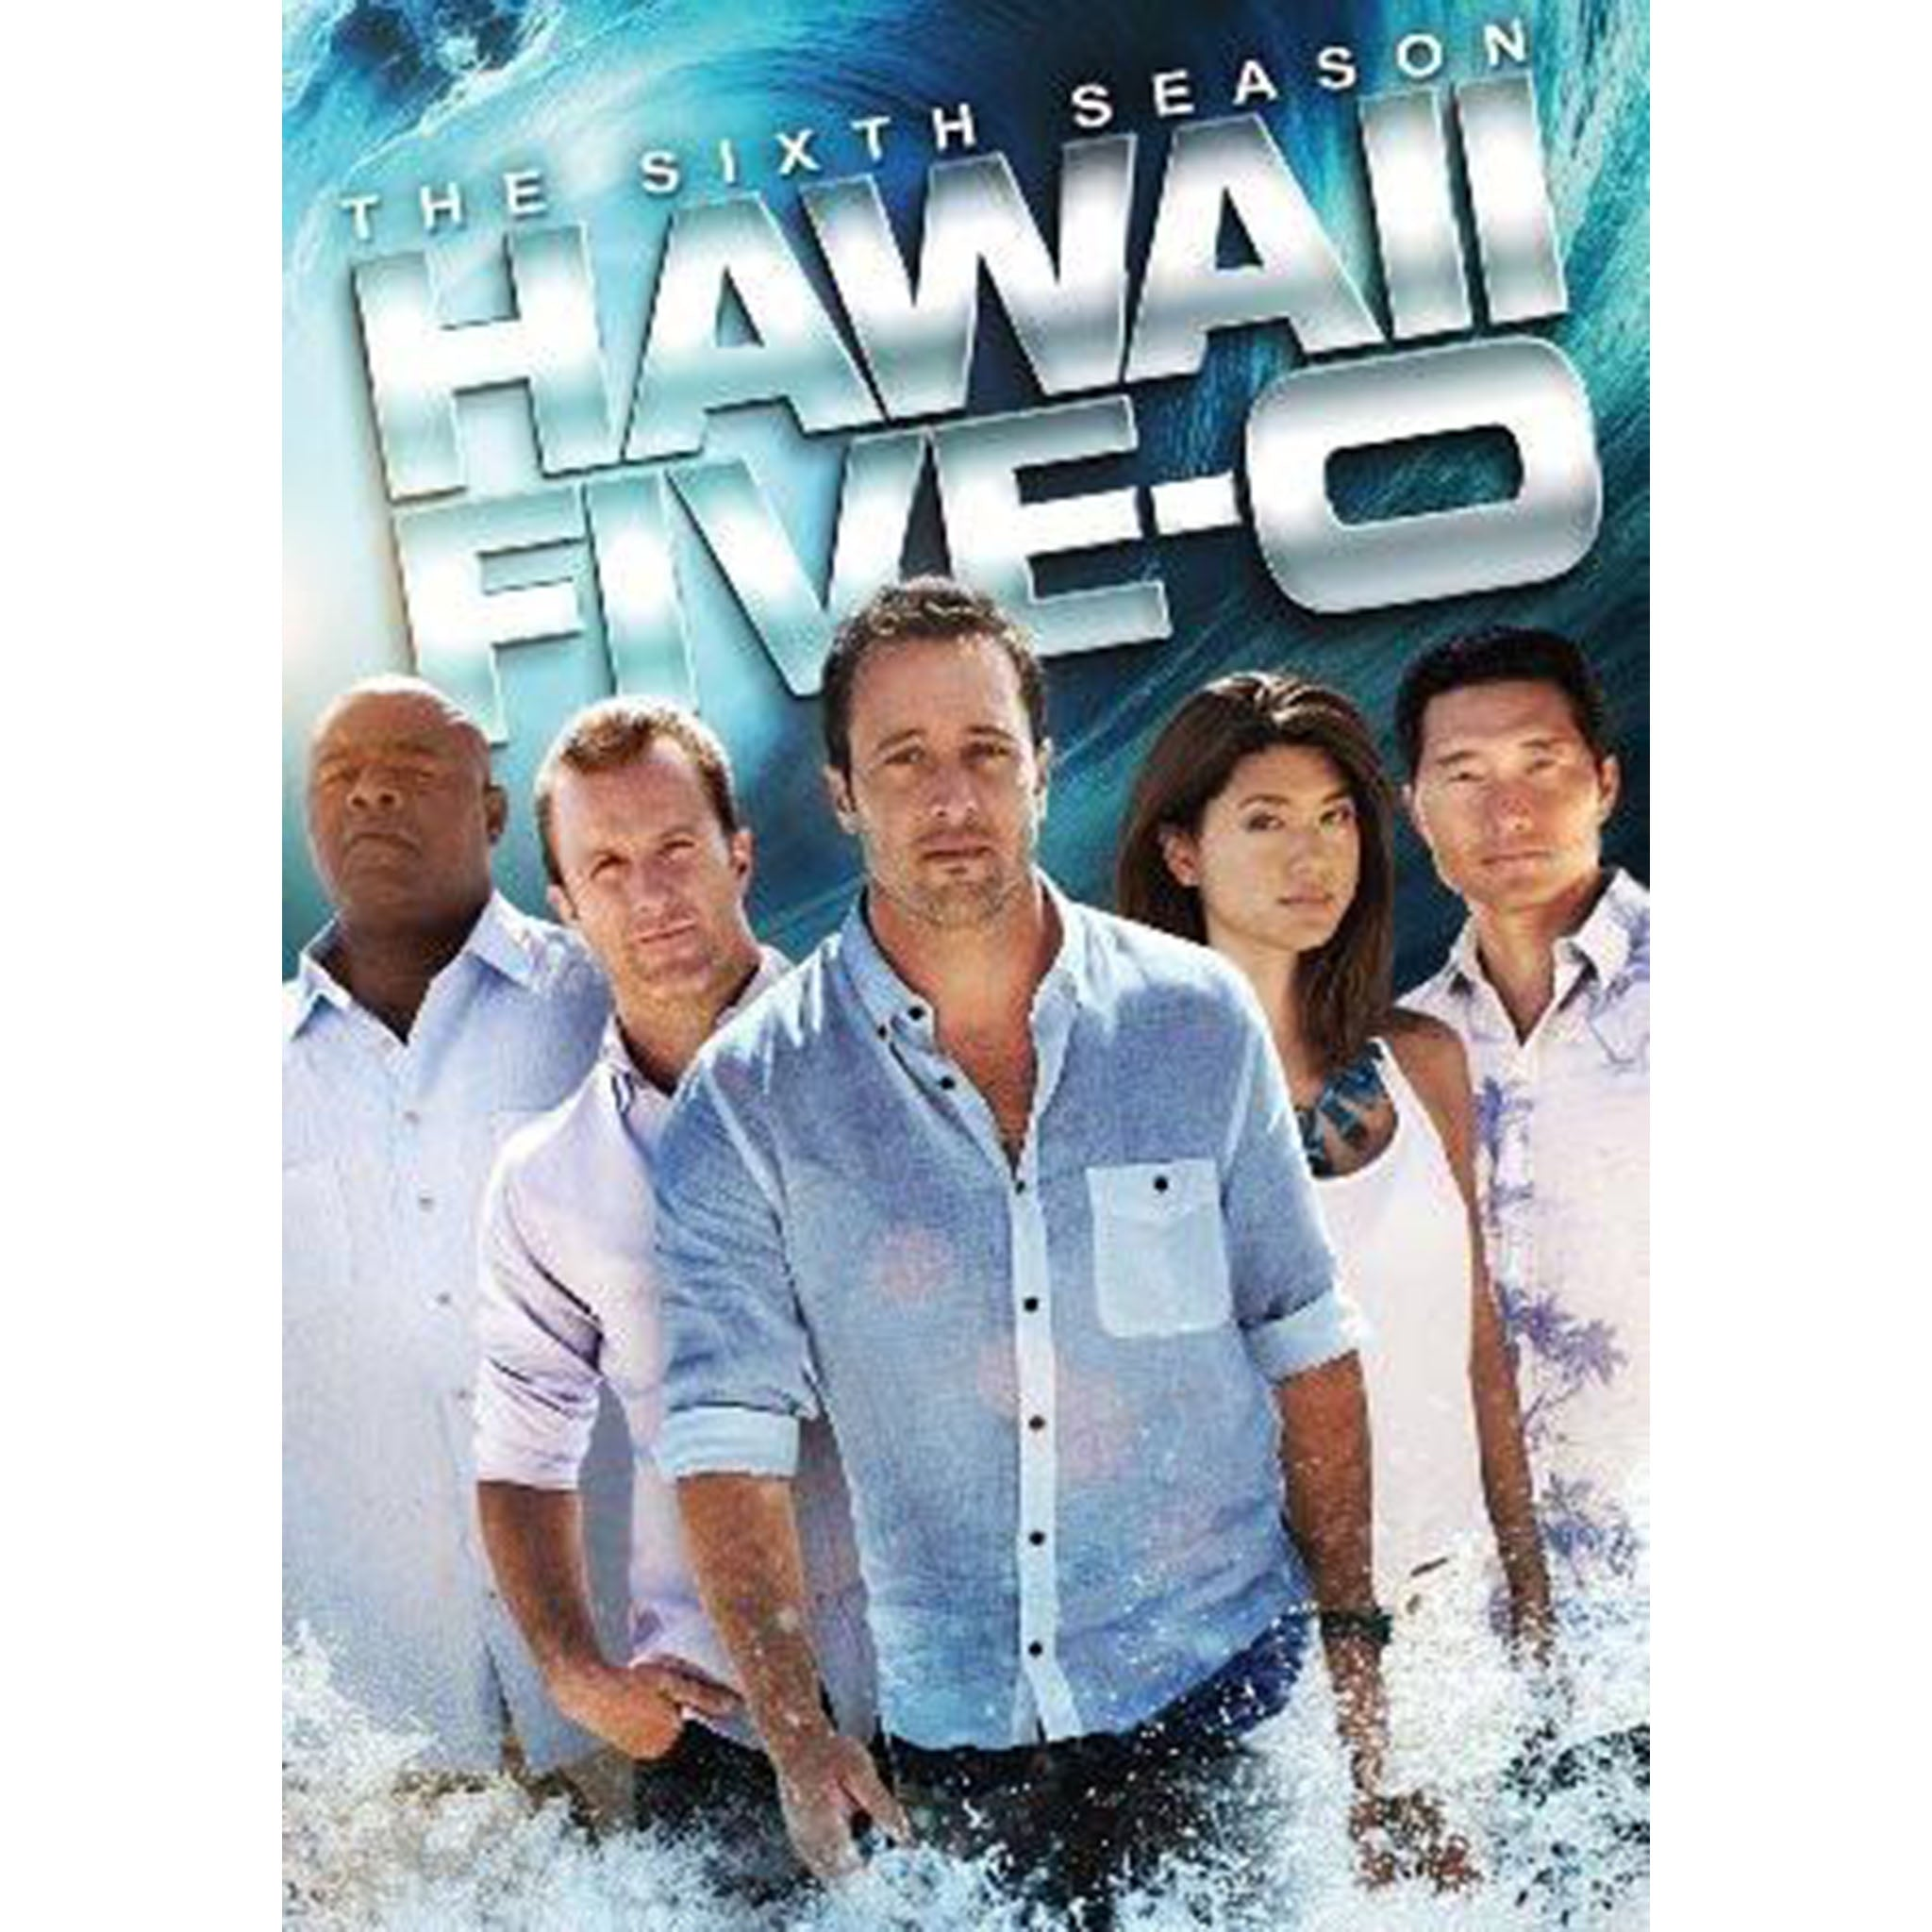 Hawaii Five-O: Season 6 (DVD) - DVDsHQ